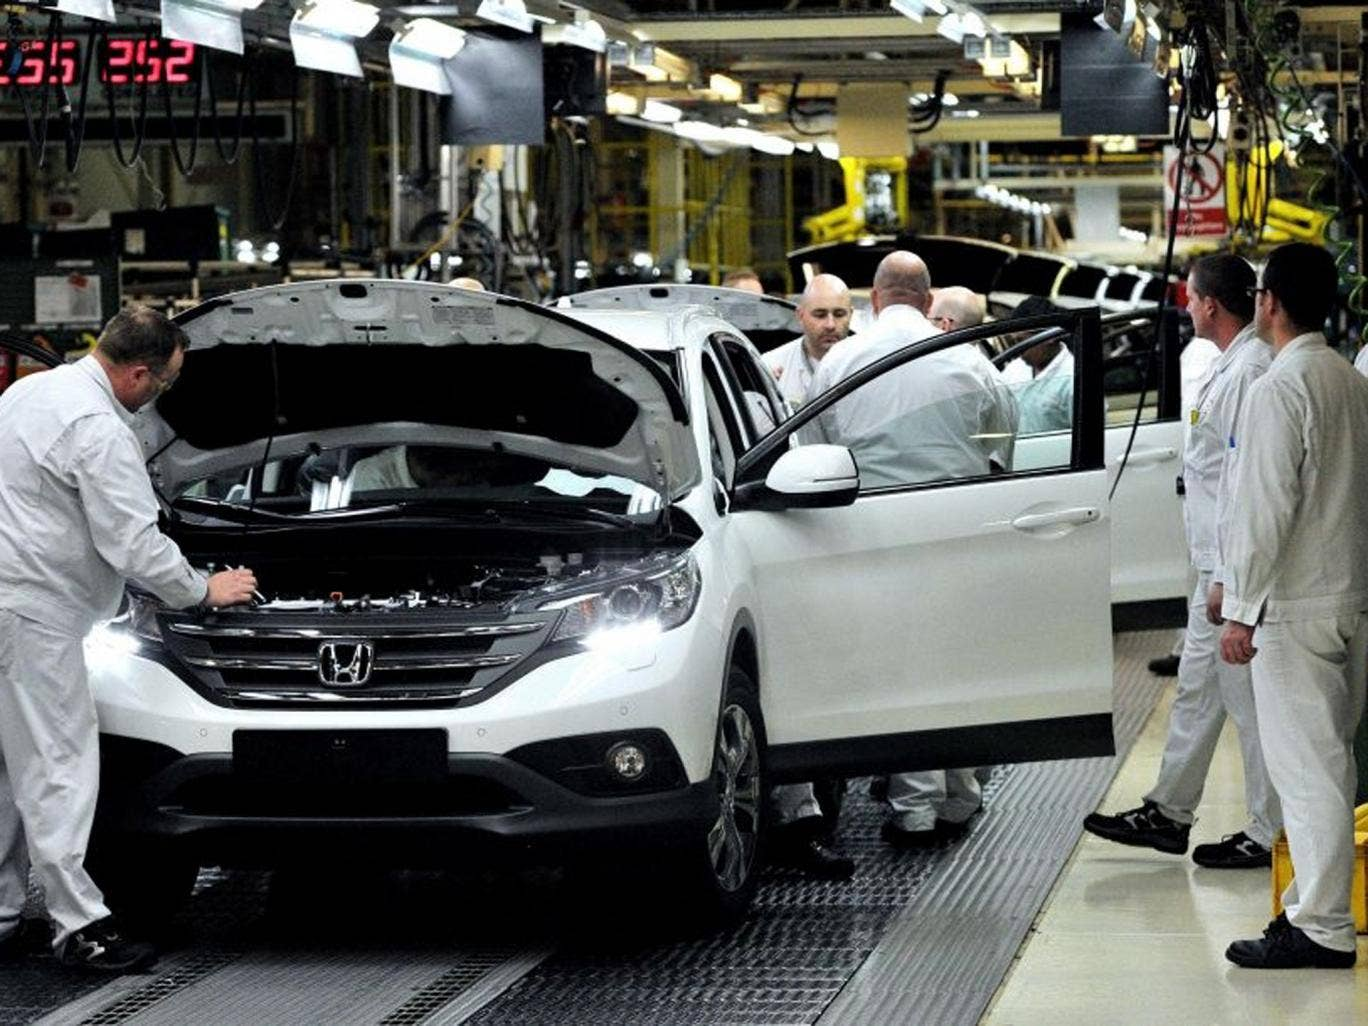 honda to axe 800 jobs with first uk cuts in 20 years. Black Bedroom Furniture Sets. Home Design Ideas